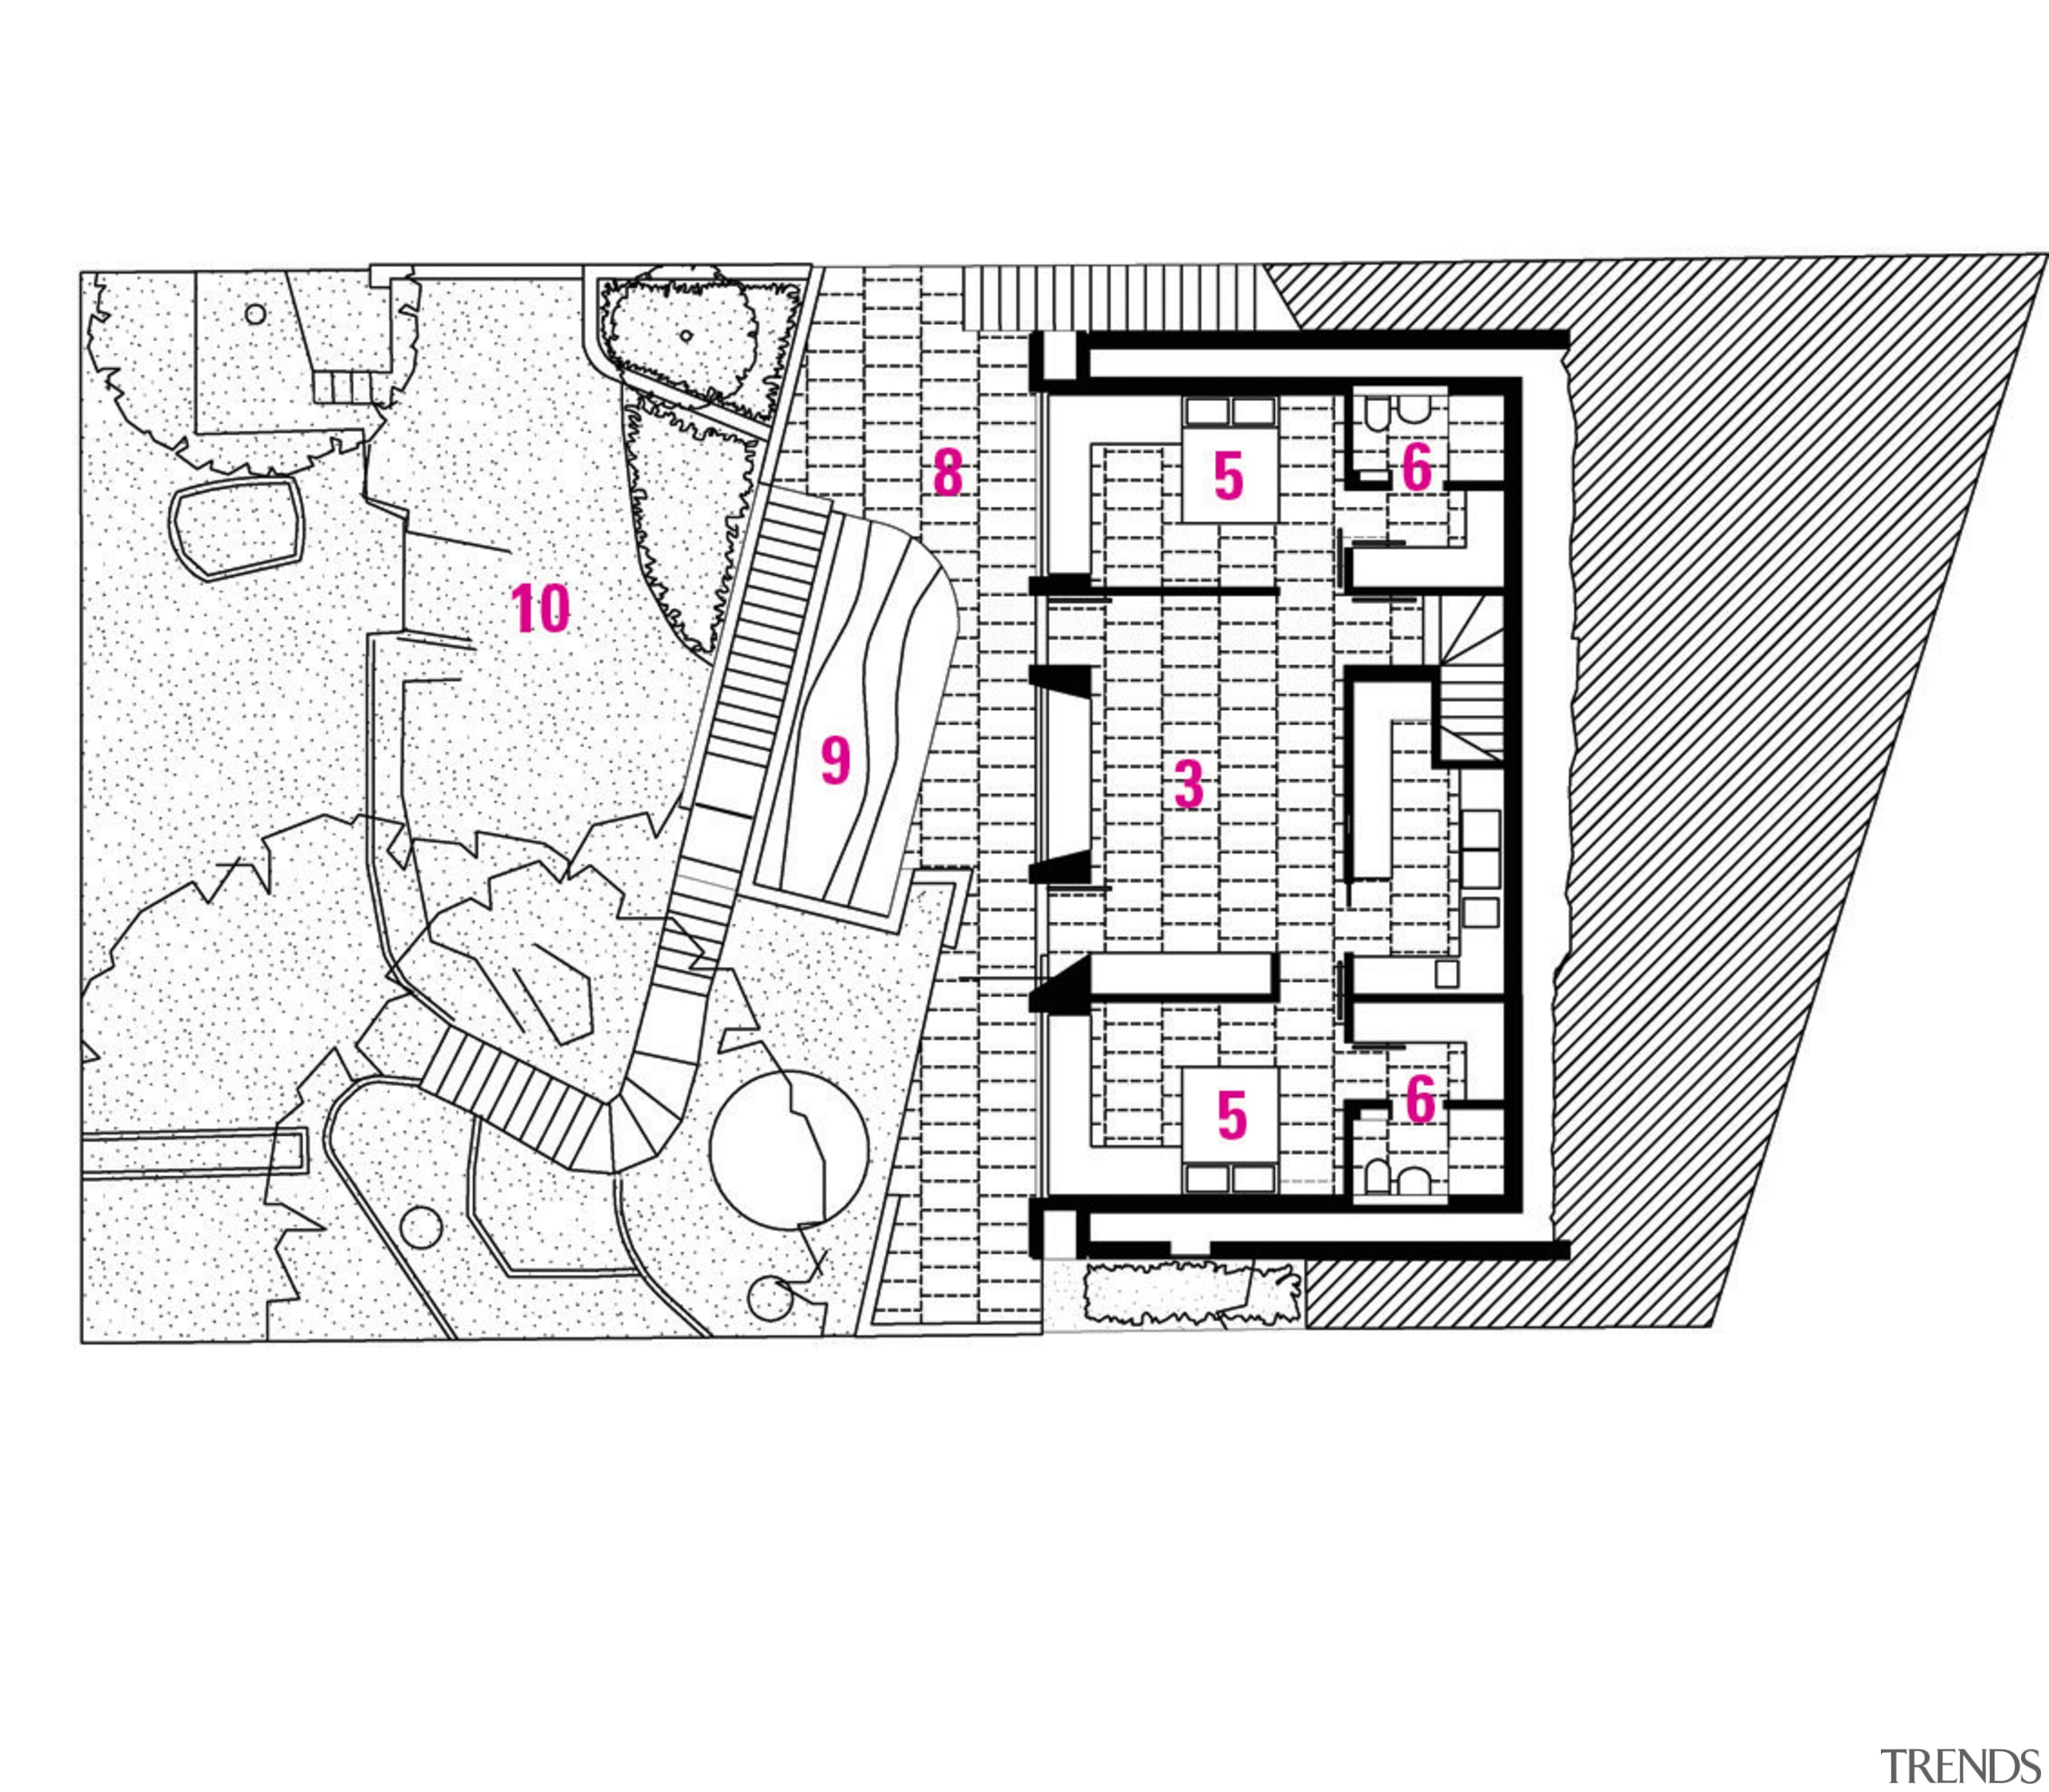 1 Garge. 2 Entry. 3 Family room. 4 area, design, diagram, drawing, floor plan, font, line, pattern, plan, product, product design, structure, text, white